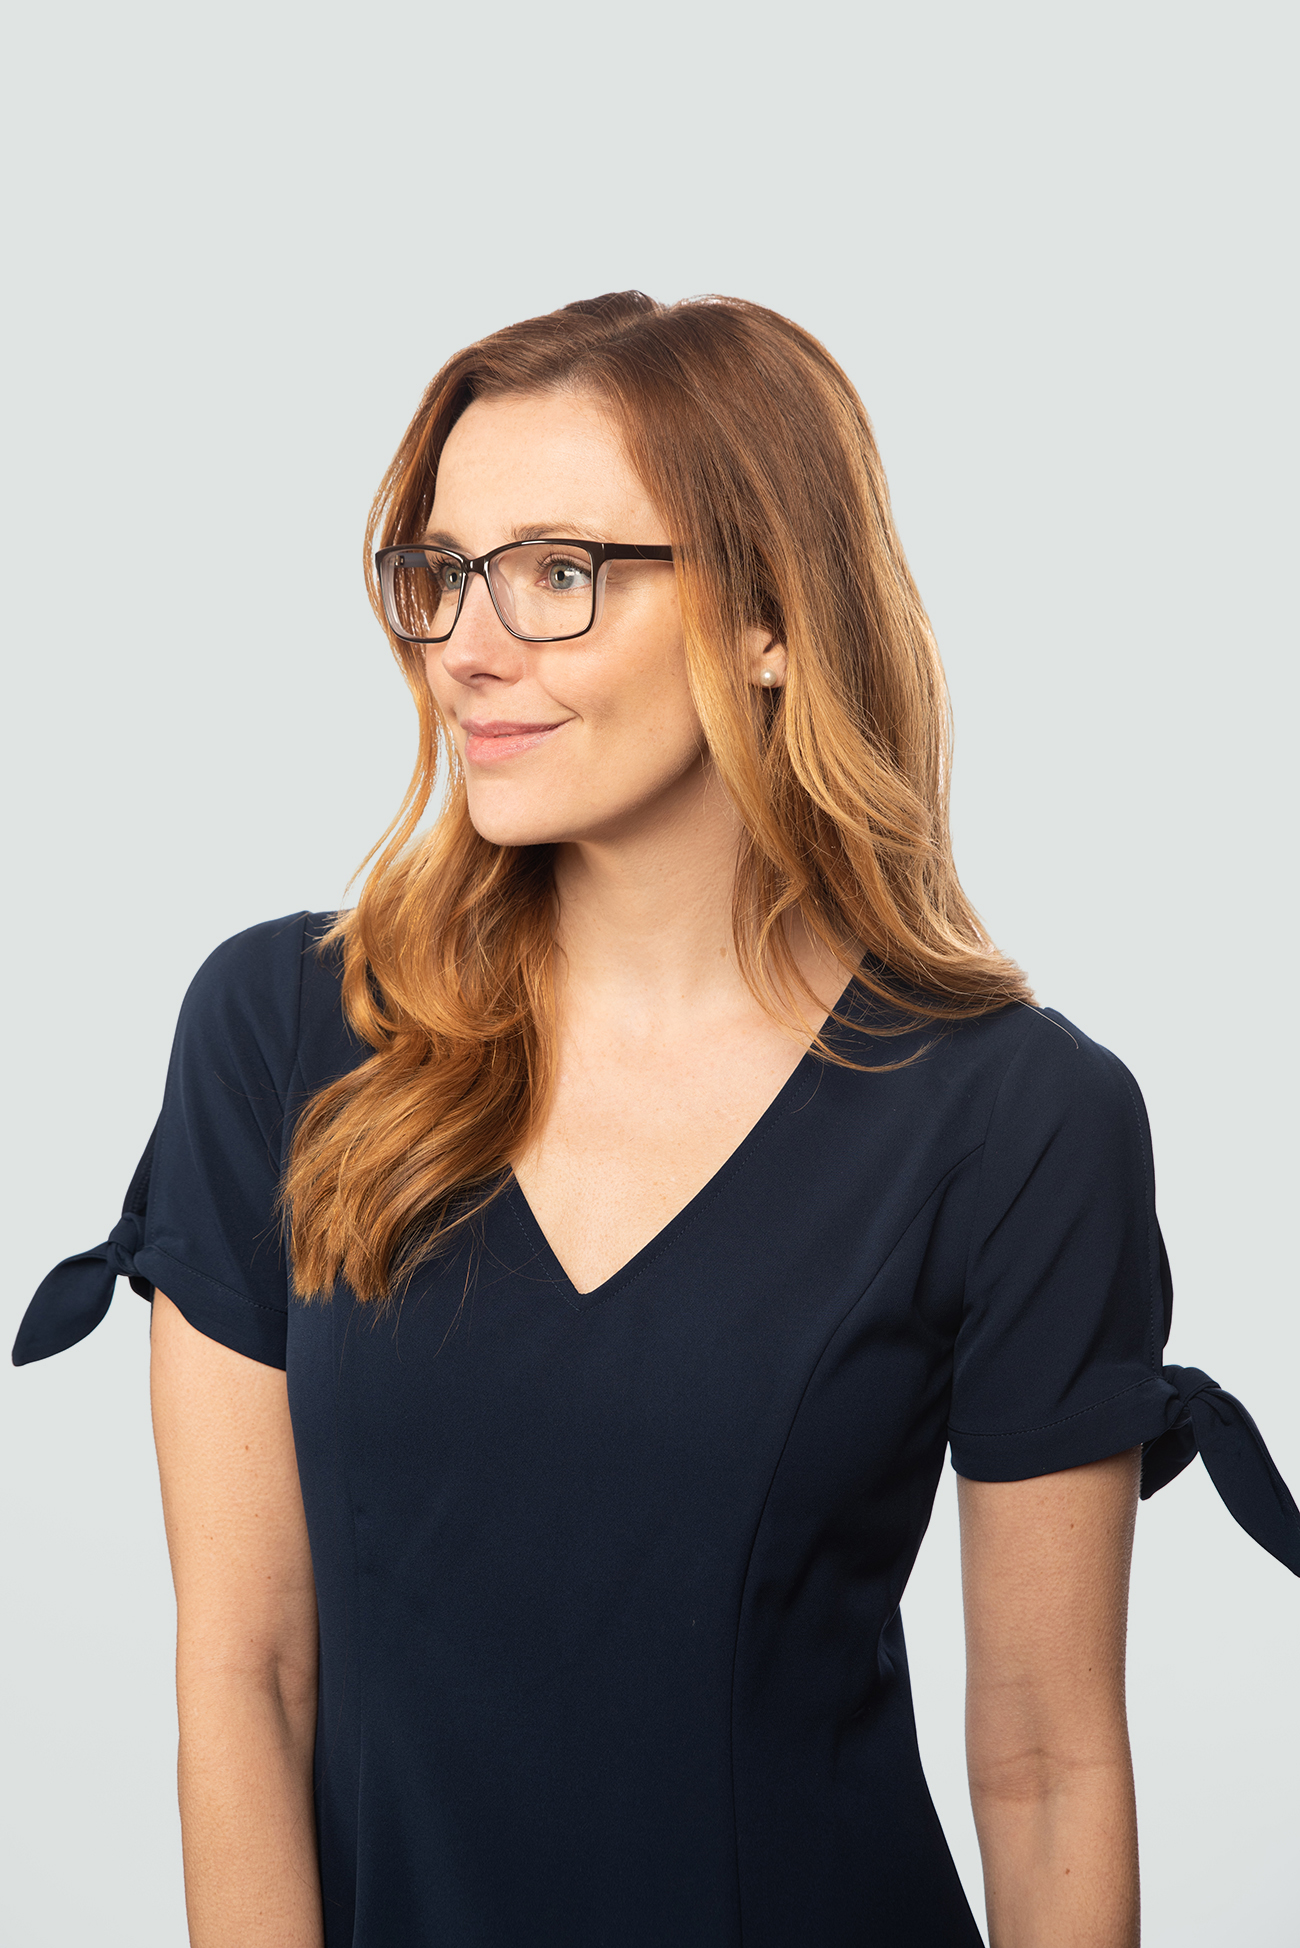 red haired woman plastic black glasses